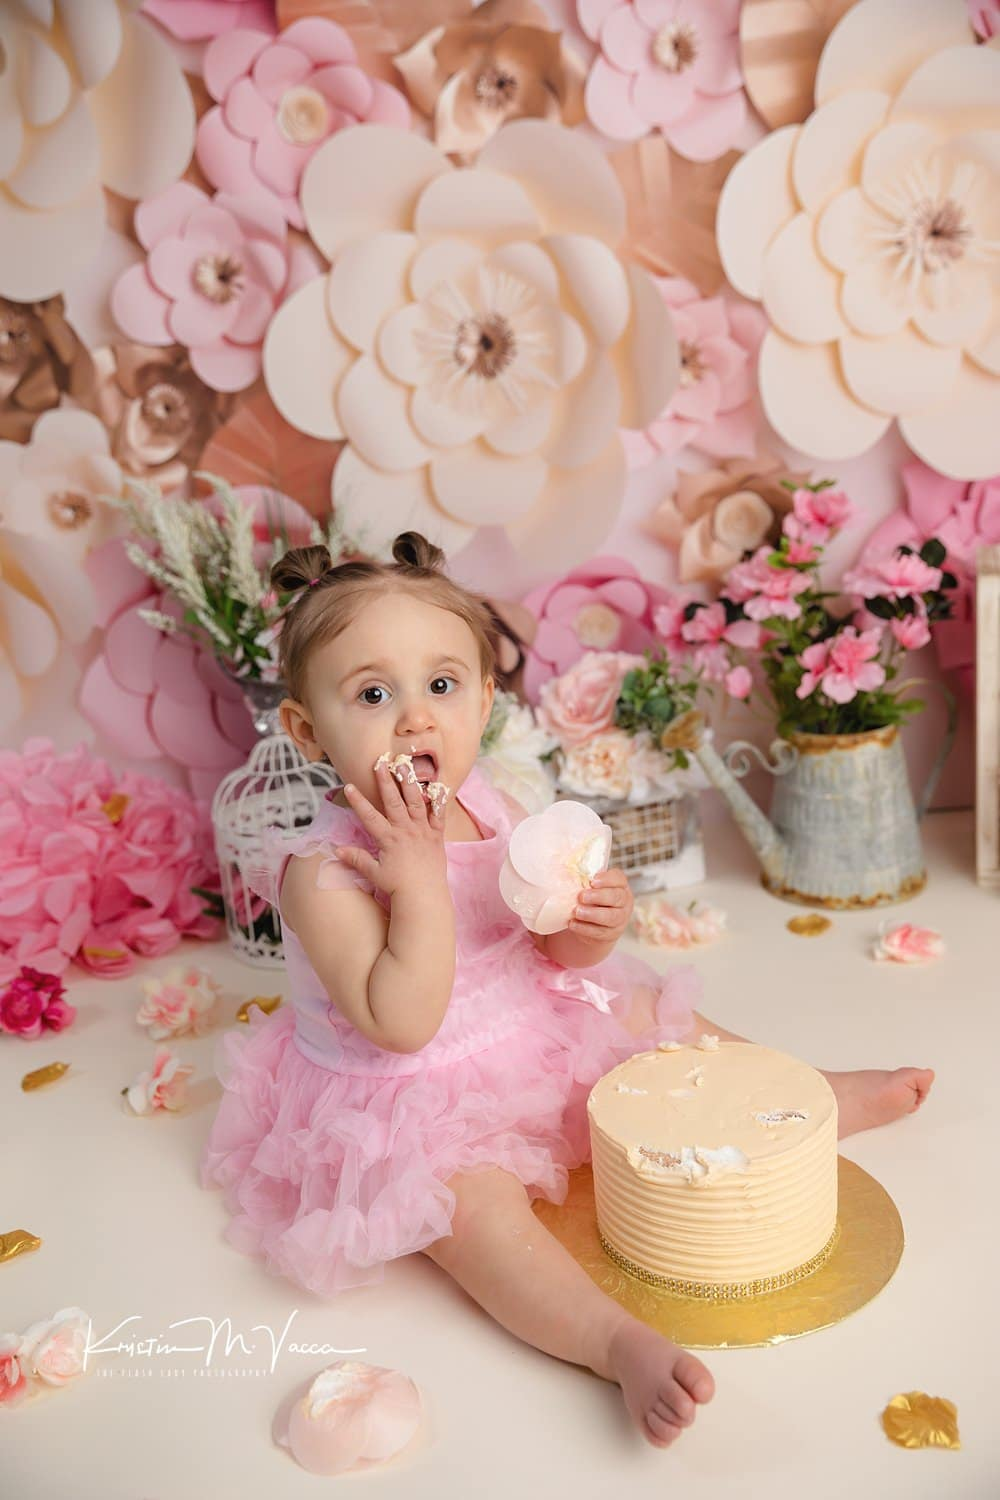 Zoeys Flower 1st Birthday Cake Smash By New York And Connecticut Photographer The Flash Lady Photography